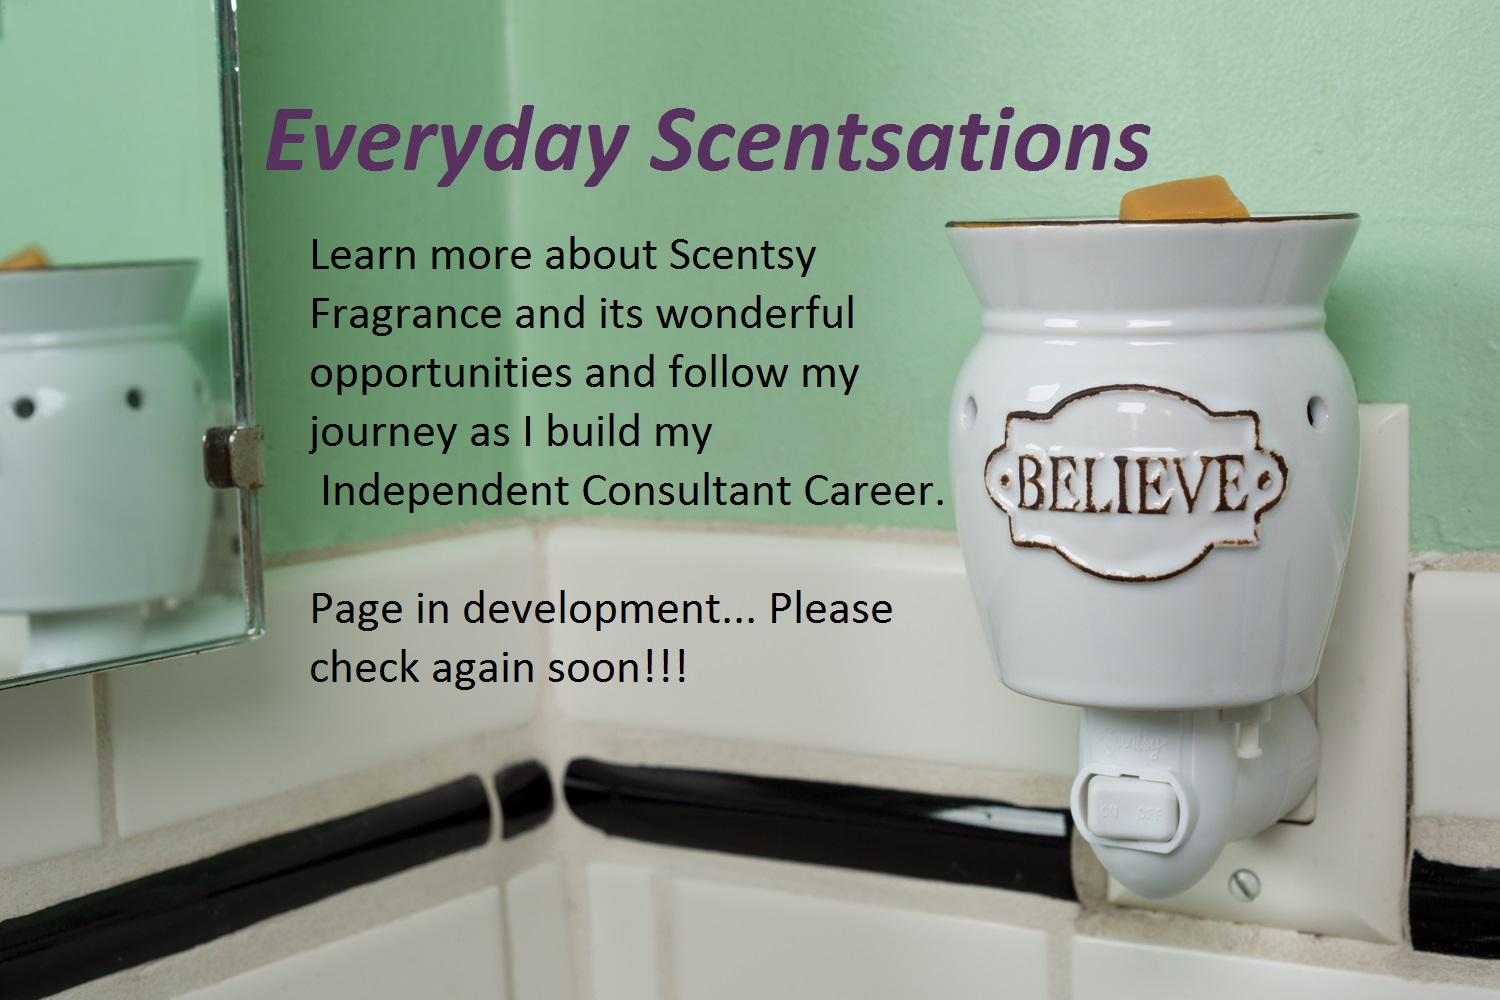 Coming Soon Everyday Scentsations